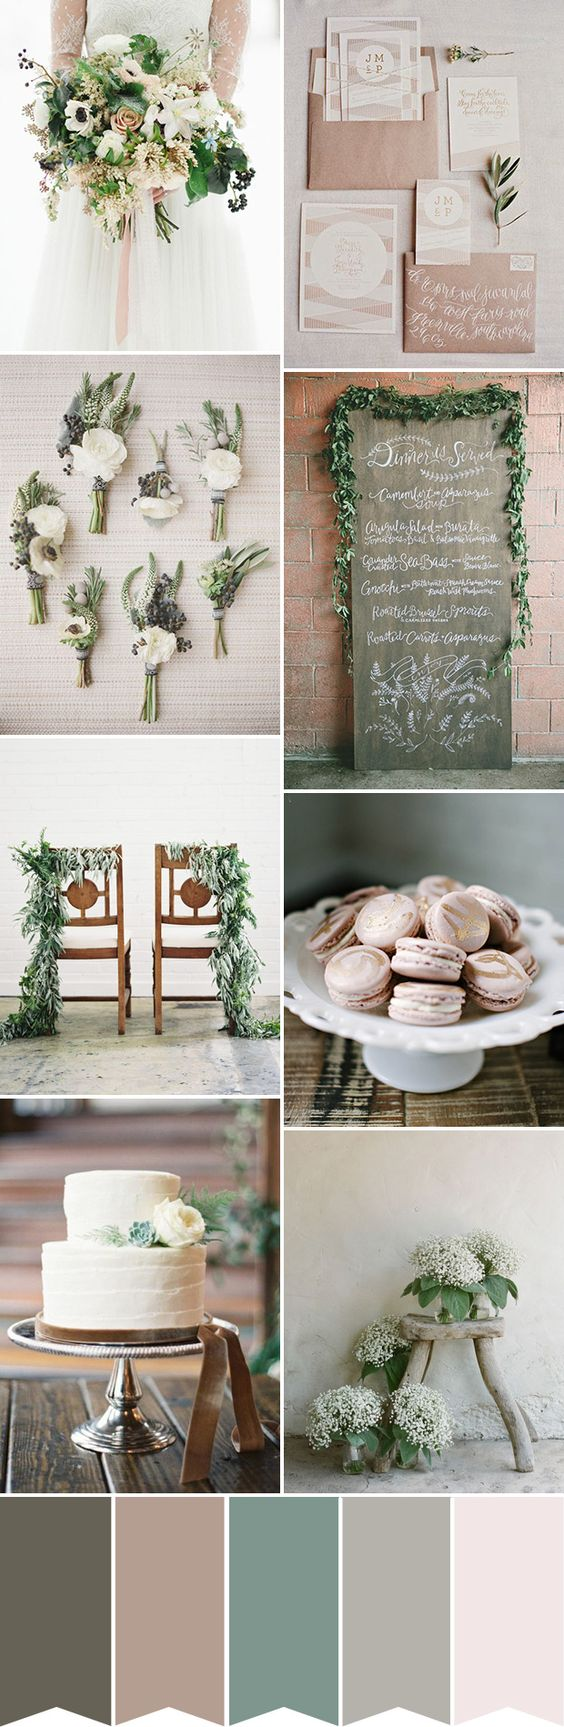 A simple and chic rustic wedding color palette | www.onefabday.com: